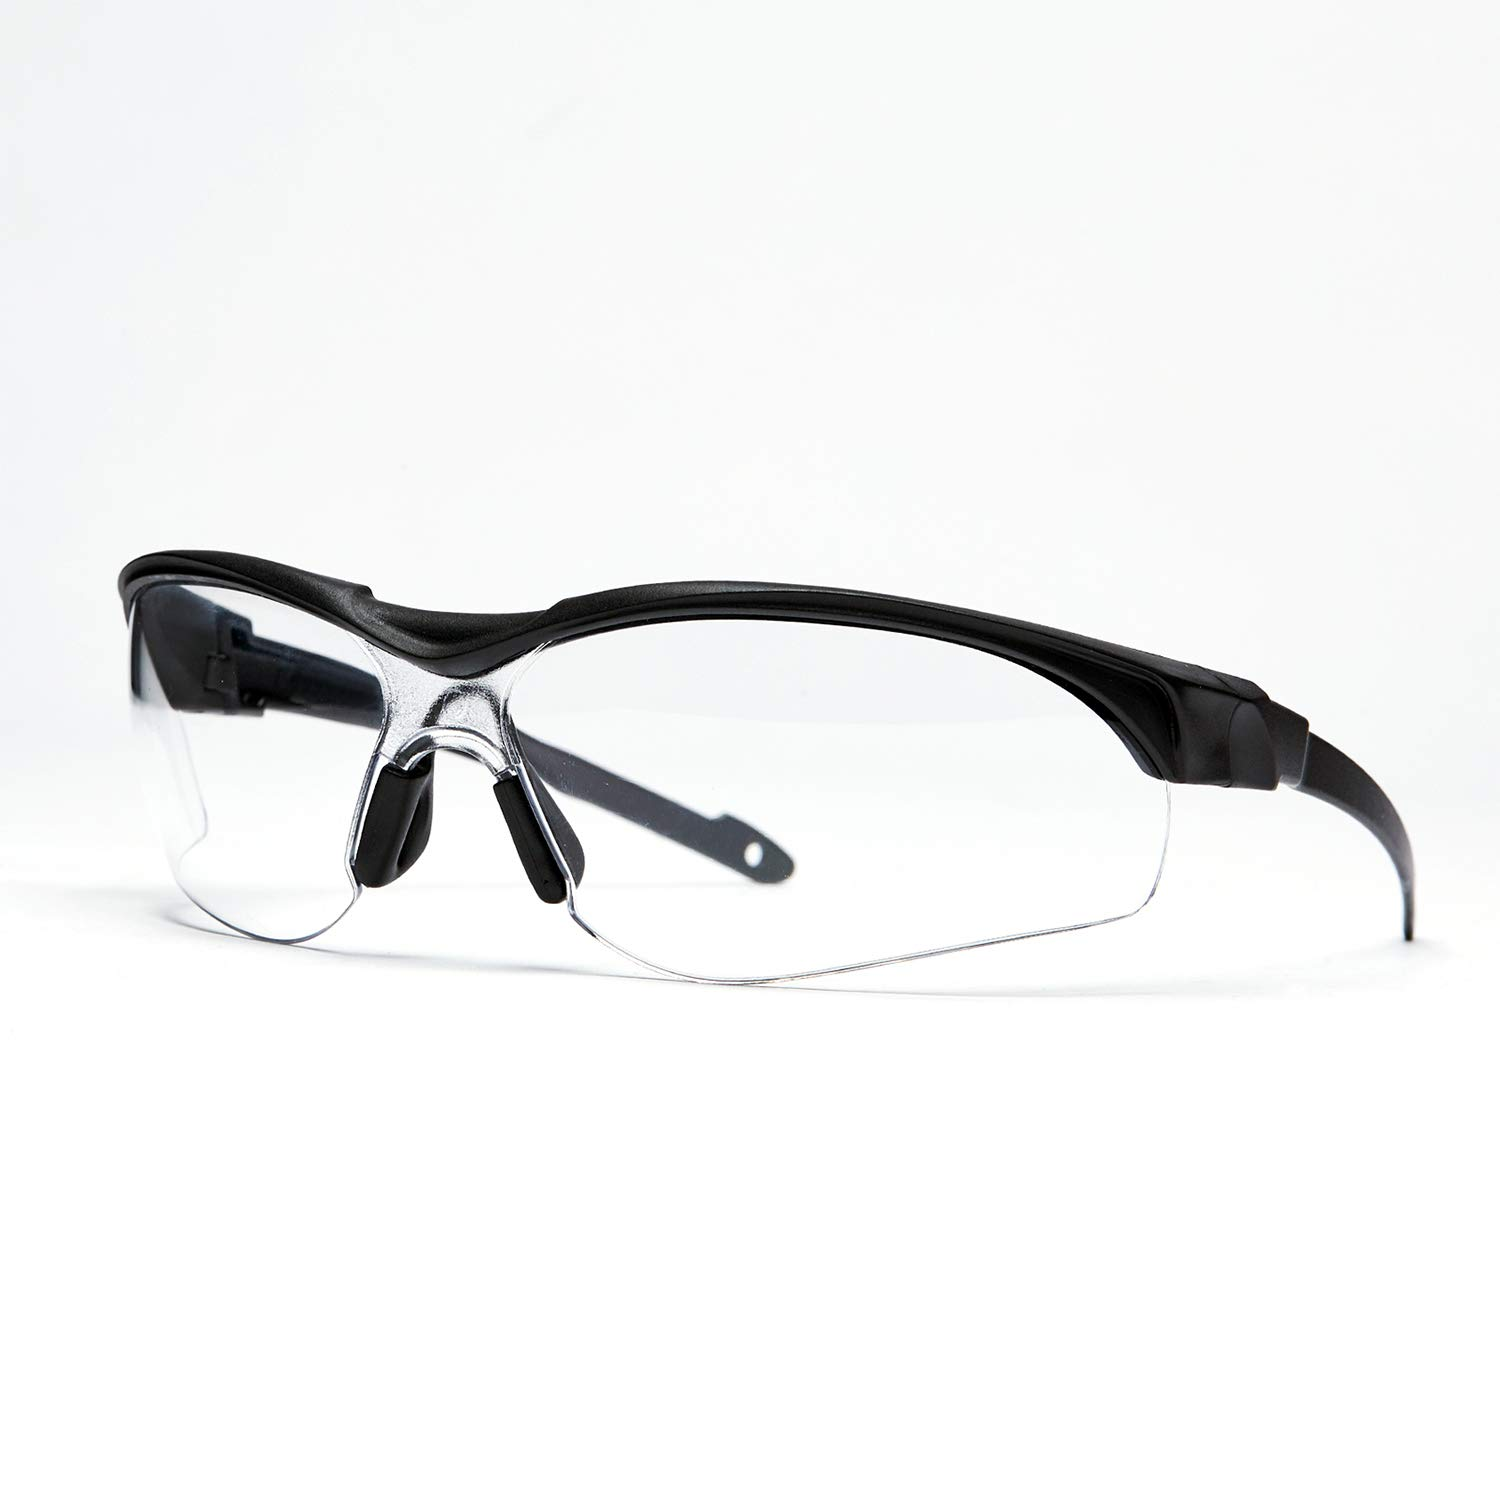 67573b06f324 Pro For Sho Safety Glasses - Paper-thin Temple Designs for Long Lasting  Comforts